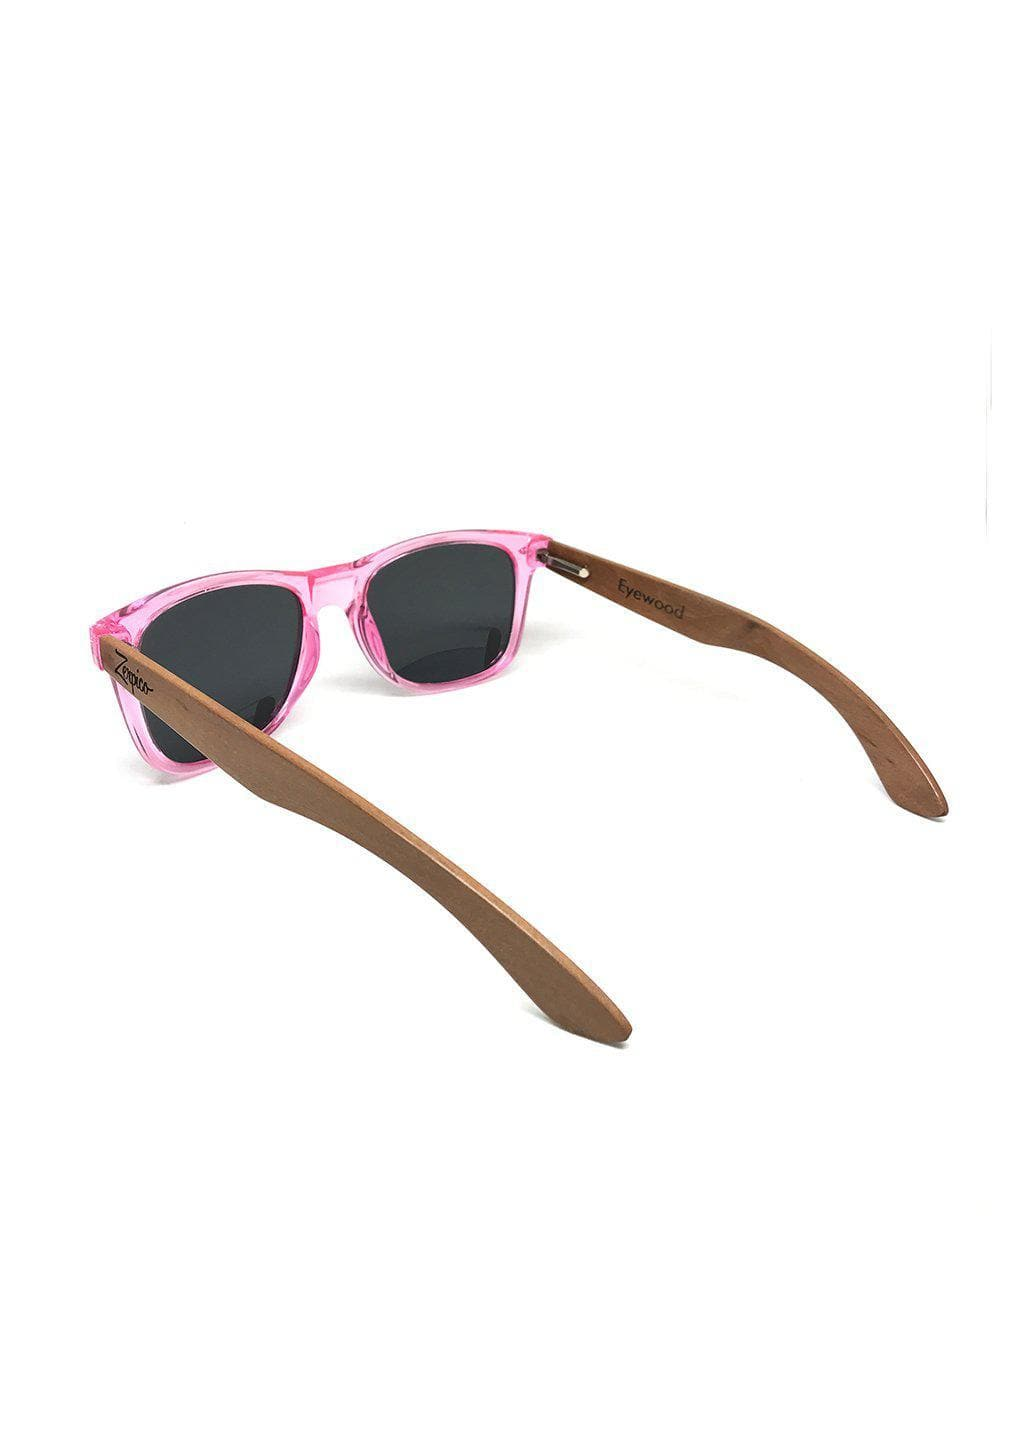 Eyewood Wayfarer - Coral - Nice wayfarers with pink frame and pink lenses. From behind.